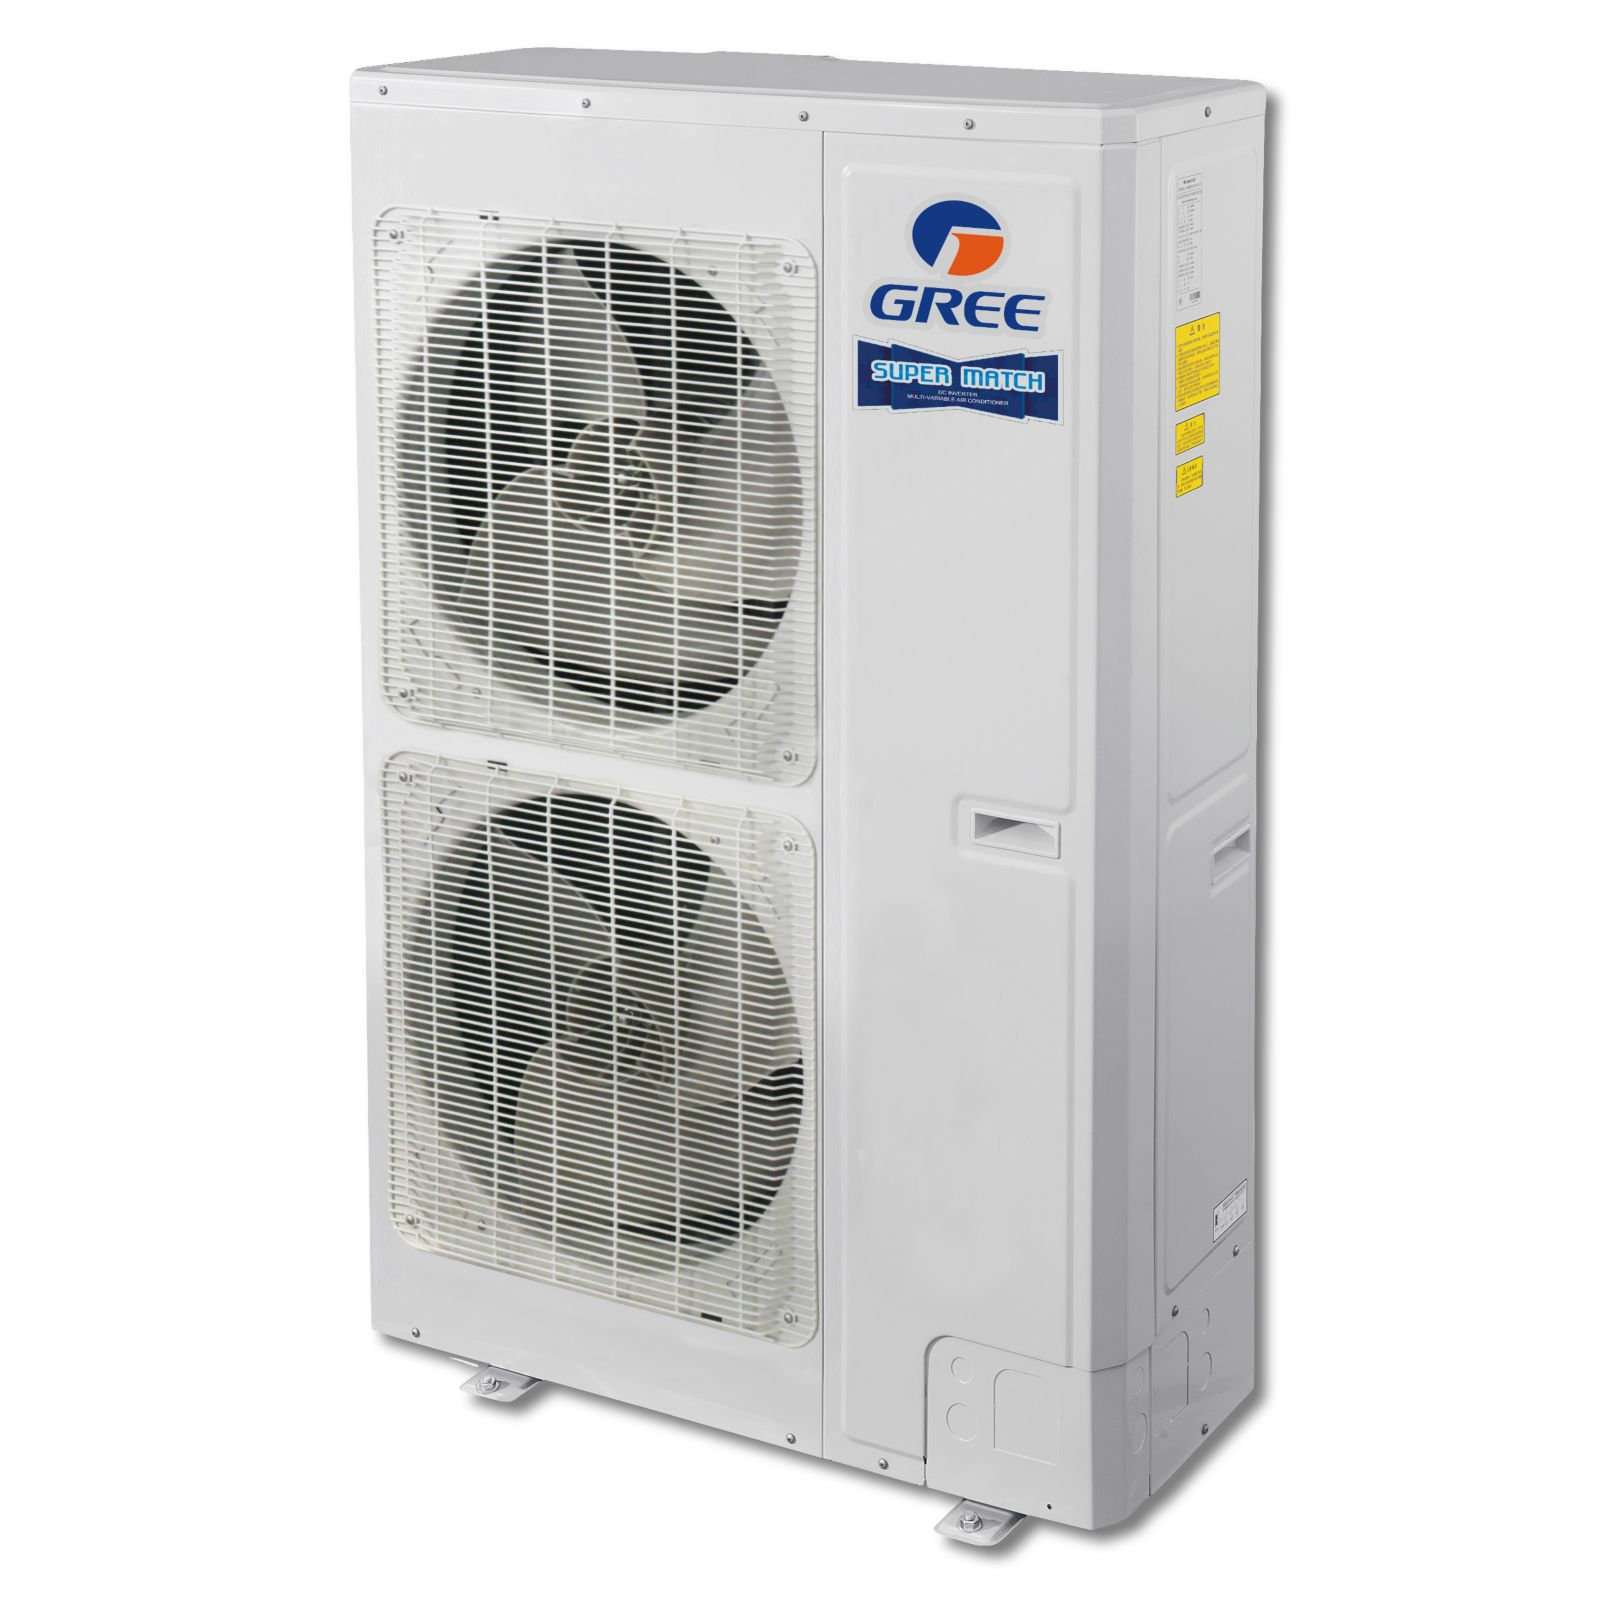 GREE MULTI56HP230V1AO - Super Multi Zone Inverter Heat Pump 57,900 Cooling BTU, 208-230/60